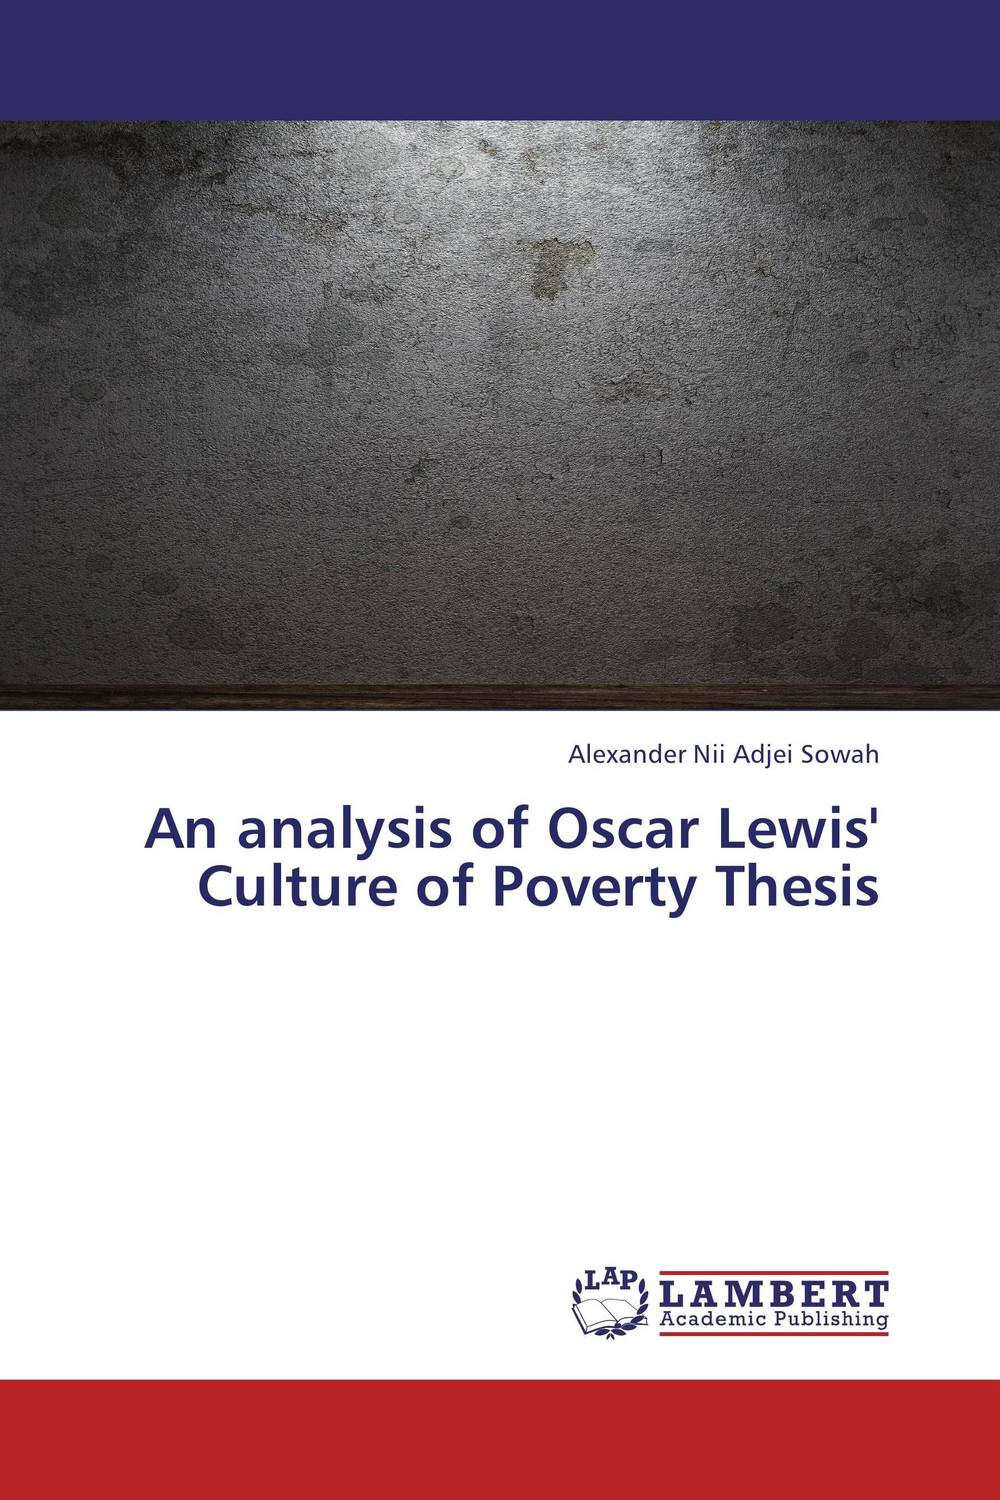 An analysis of Oscar Lewis' Culture of Poverty Thesis